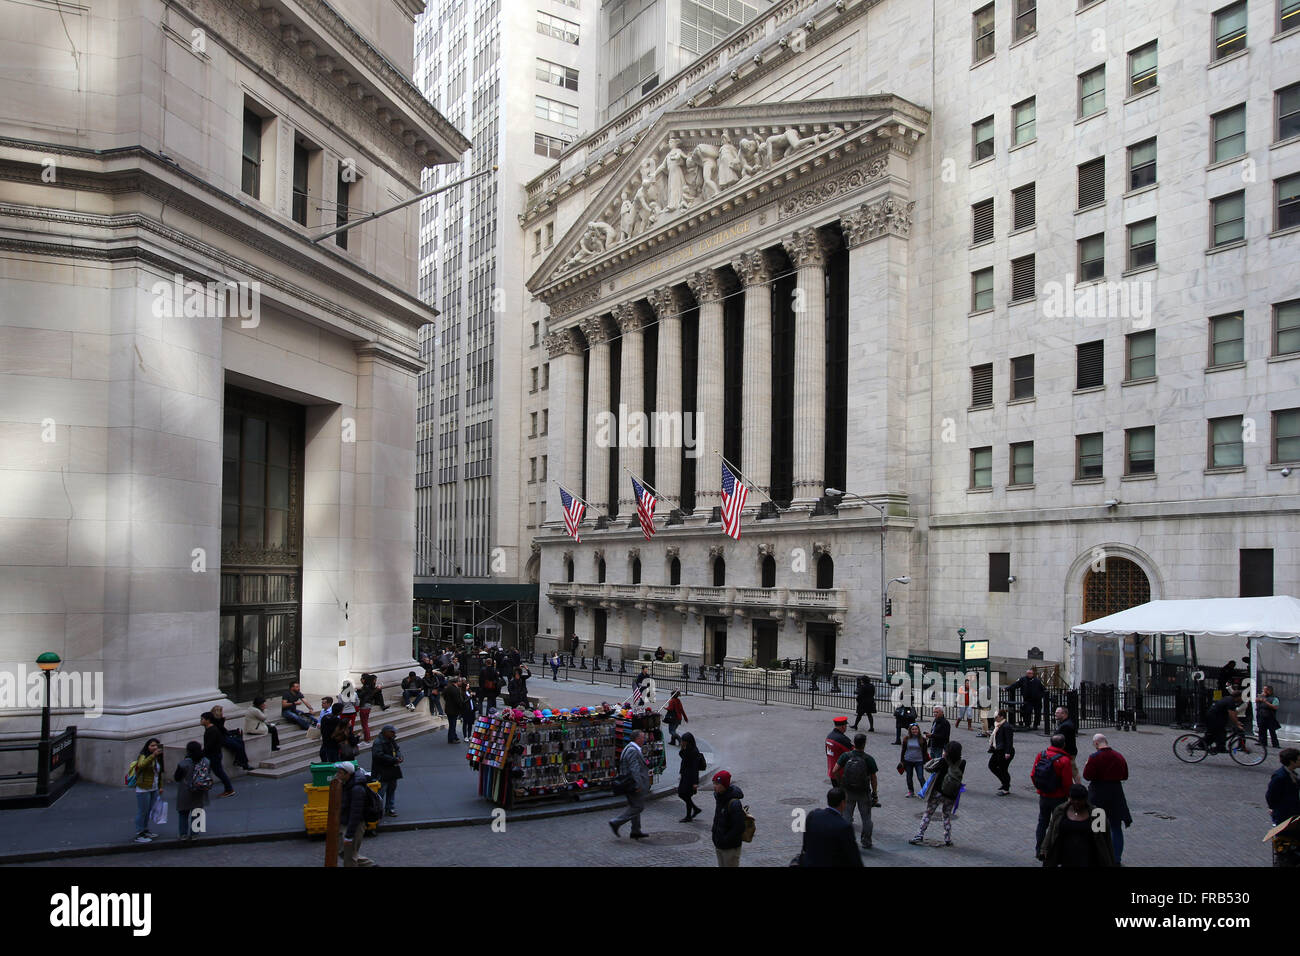 New York Stock Exchange at the intersection of Broad and Wall Street in New York City, New York, United States of - Stock Image